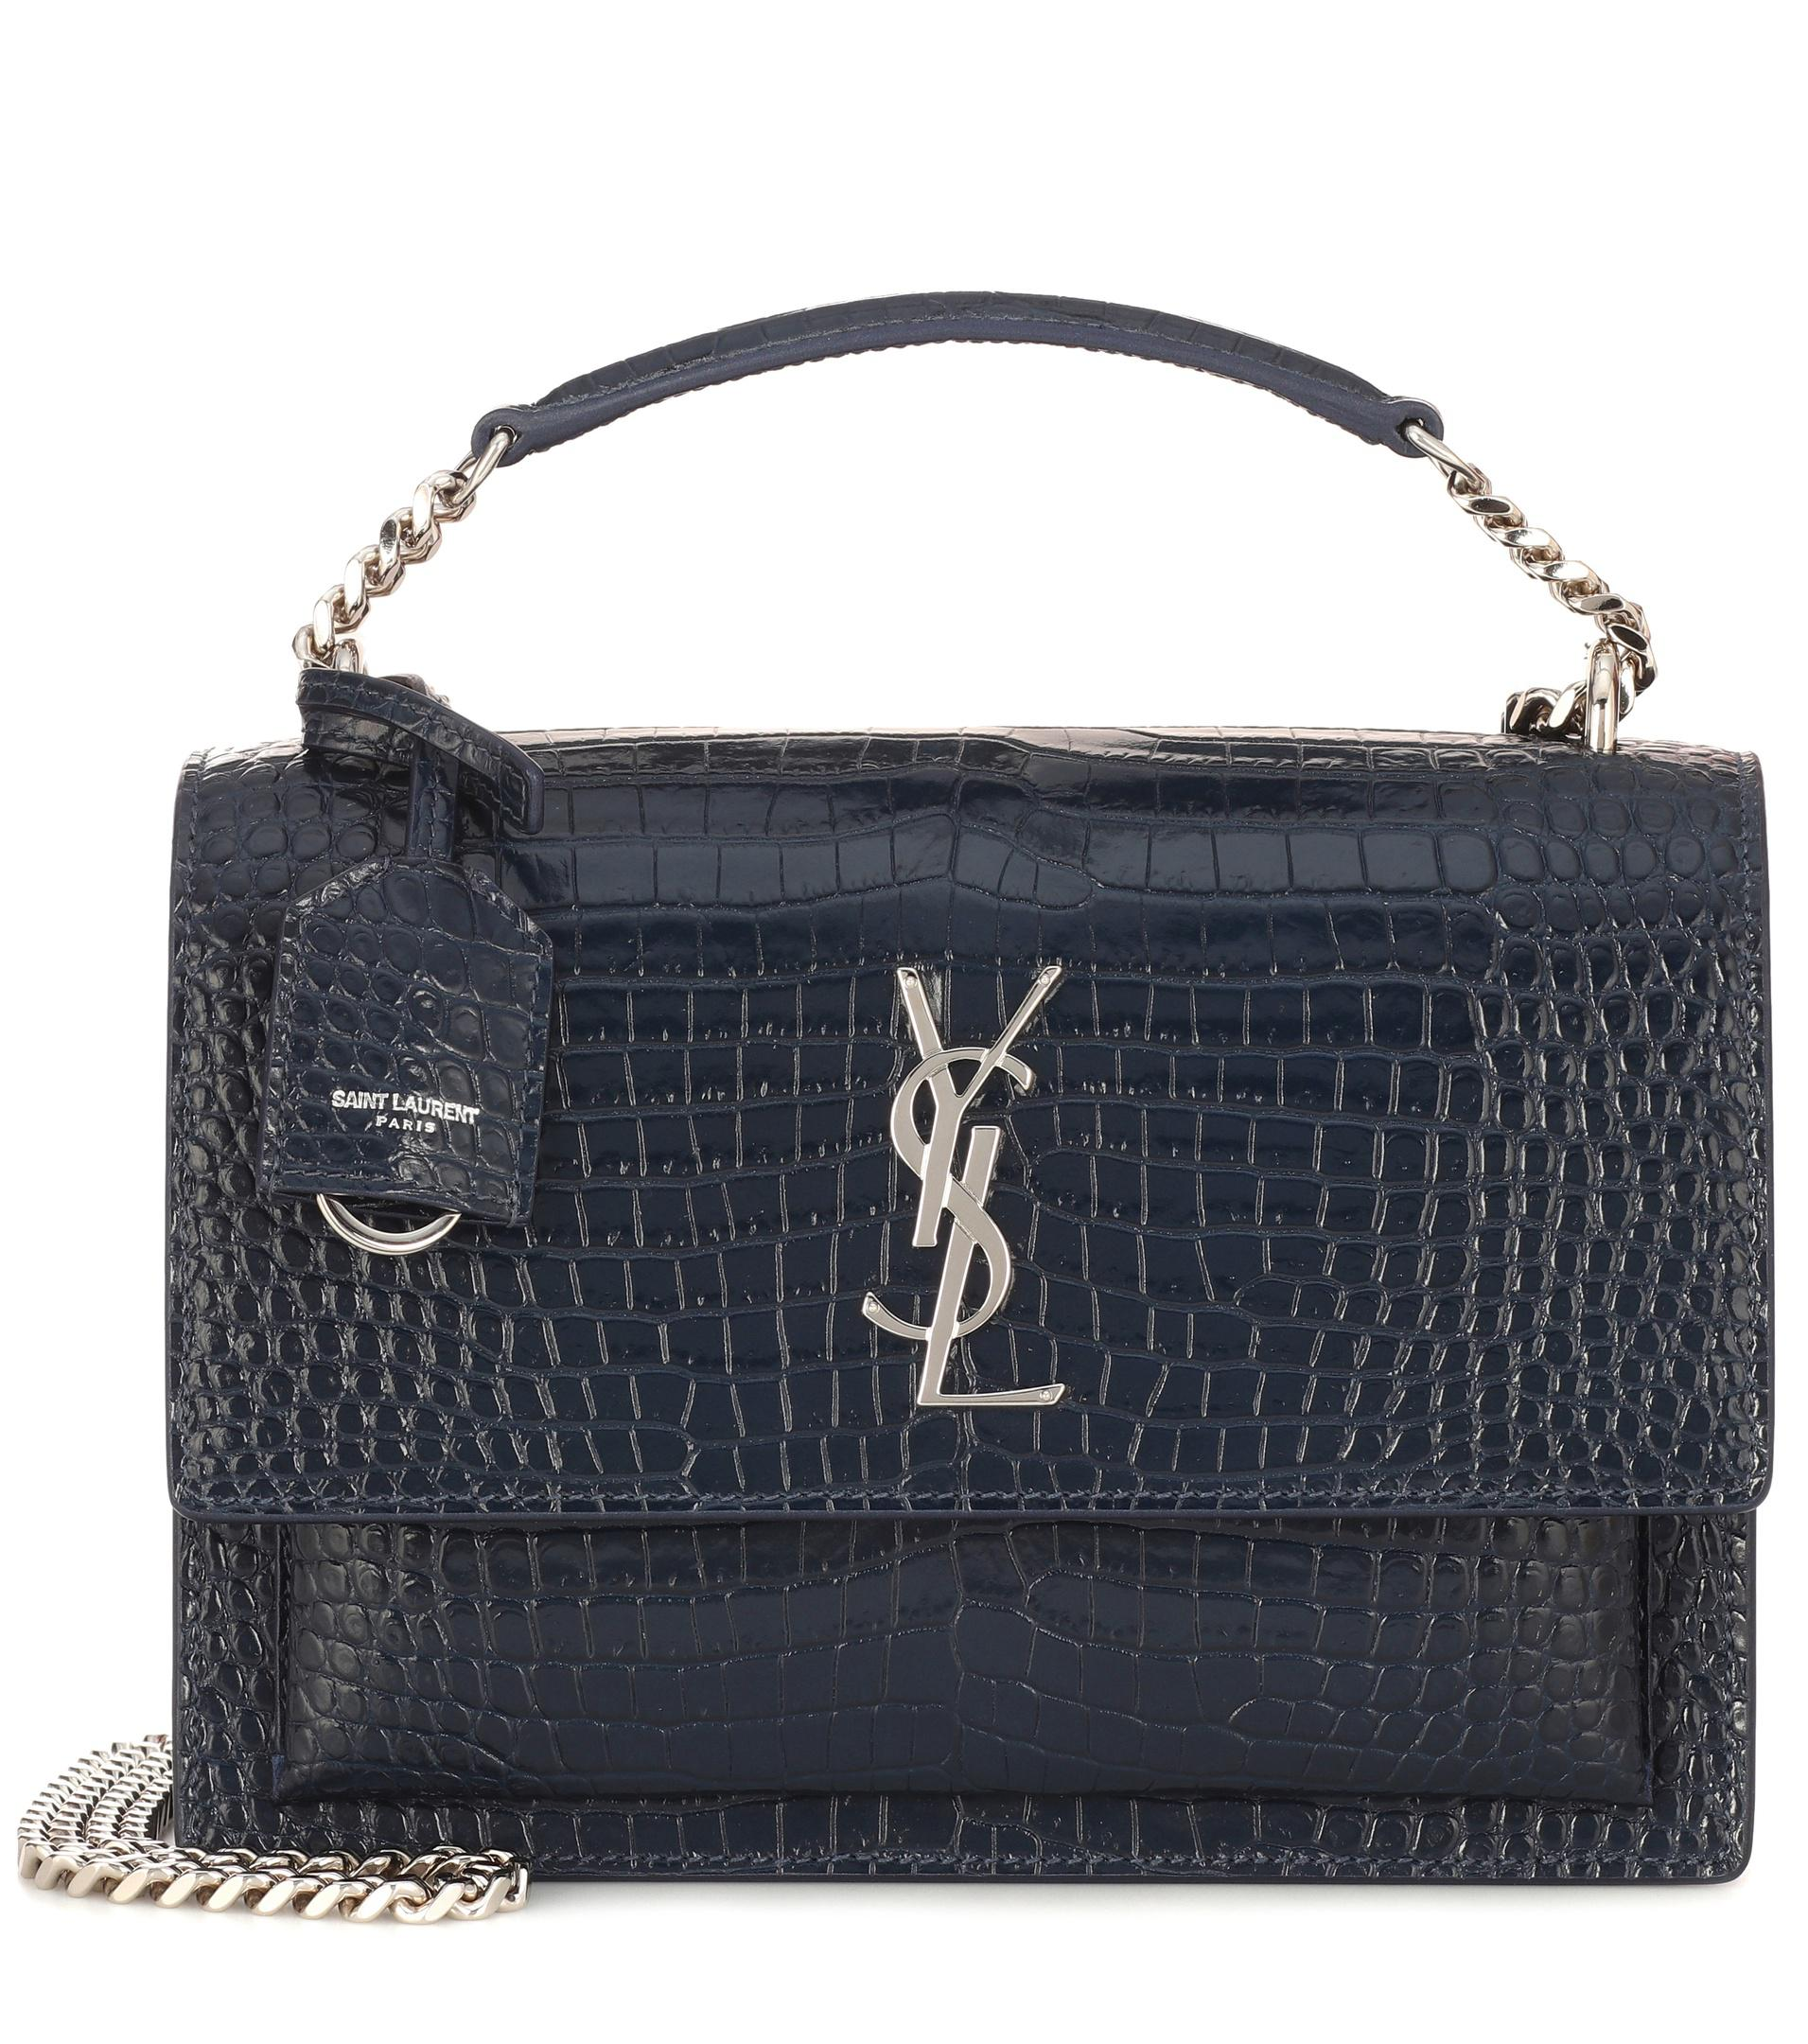 0e3636f562c6 Saint Laurent. Women s Blue Sunset Monogram Medium Shoulder Bag.  2